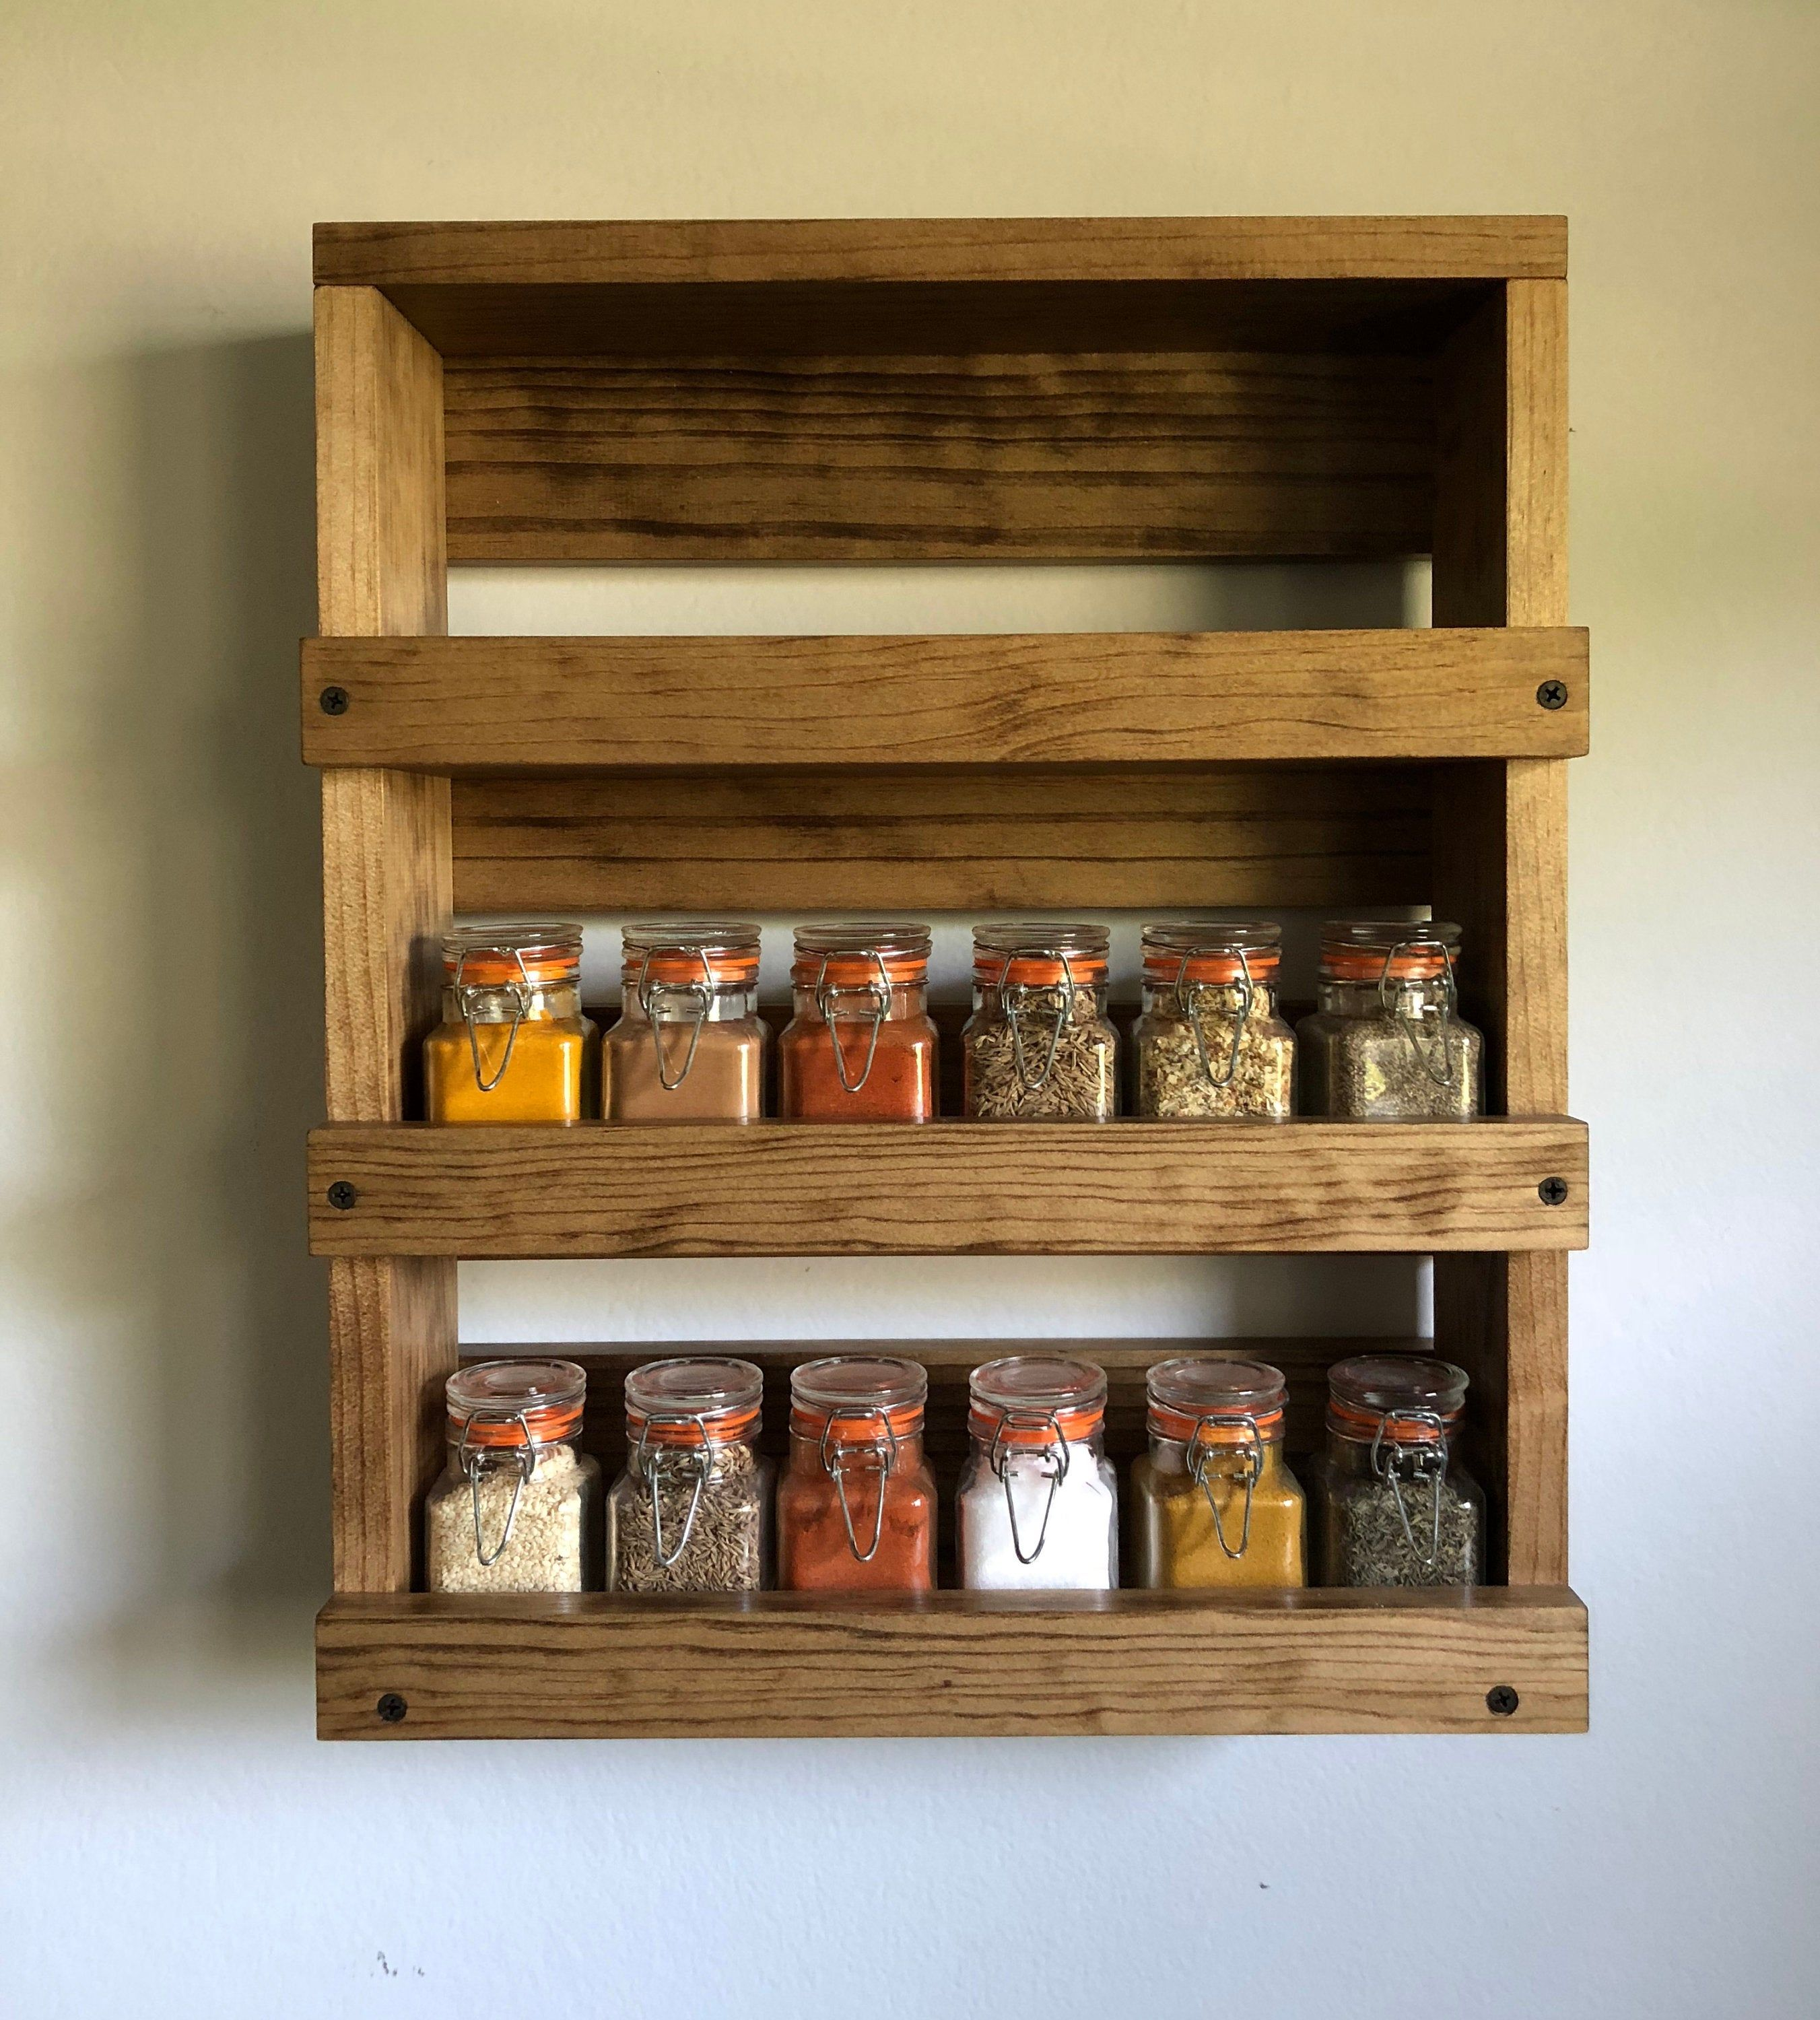 Wall Mounted Spice Rack Gift Item For Her Kitchen Spice Etsy Kitchen Wall Storage Wall Mounted Spice Rack Wood Spice Rack